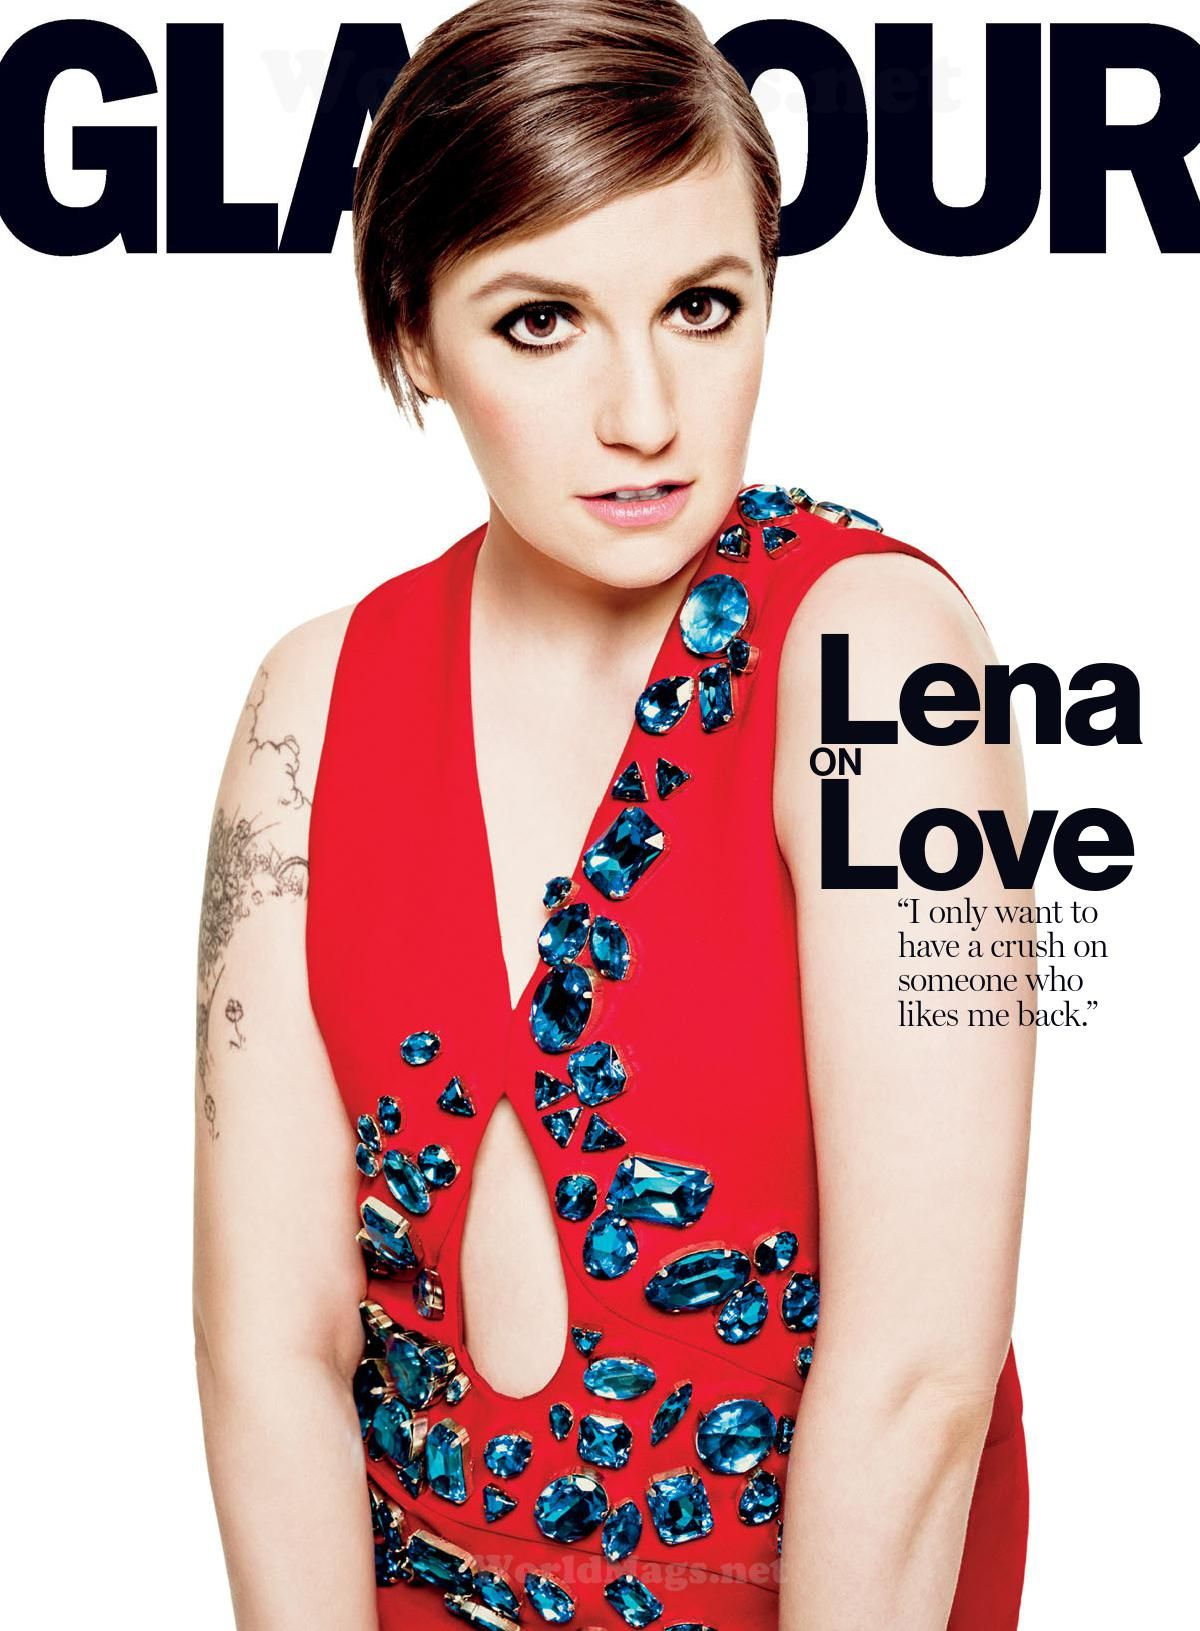 LENA DUNHAM in Glamour Magazine, April 2014 Issue